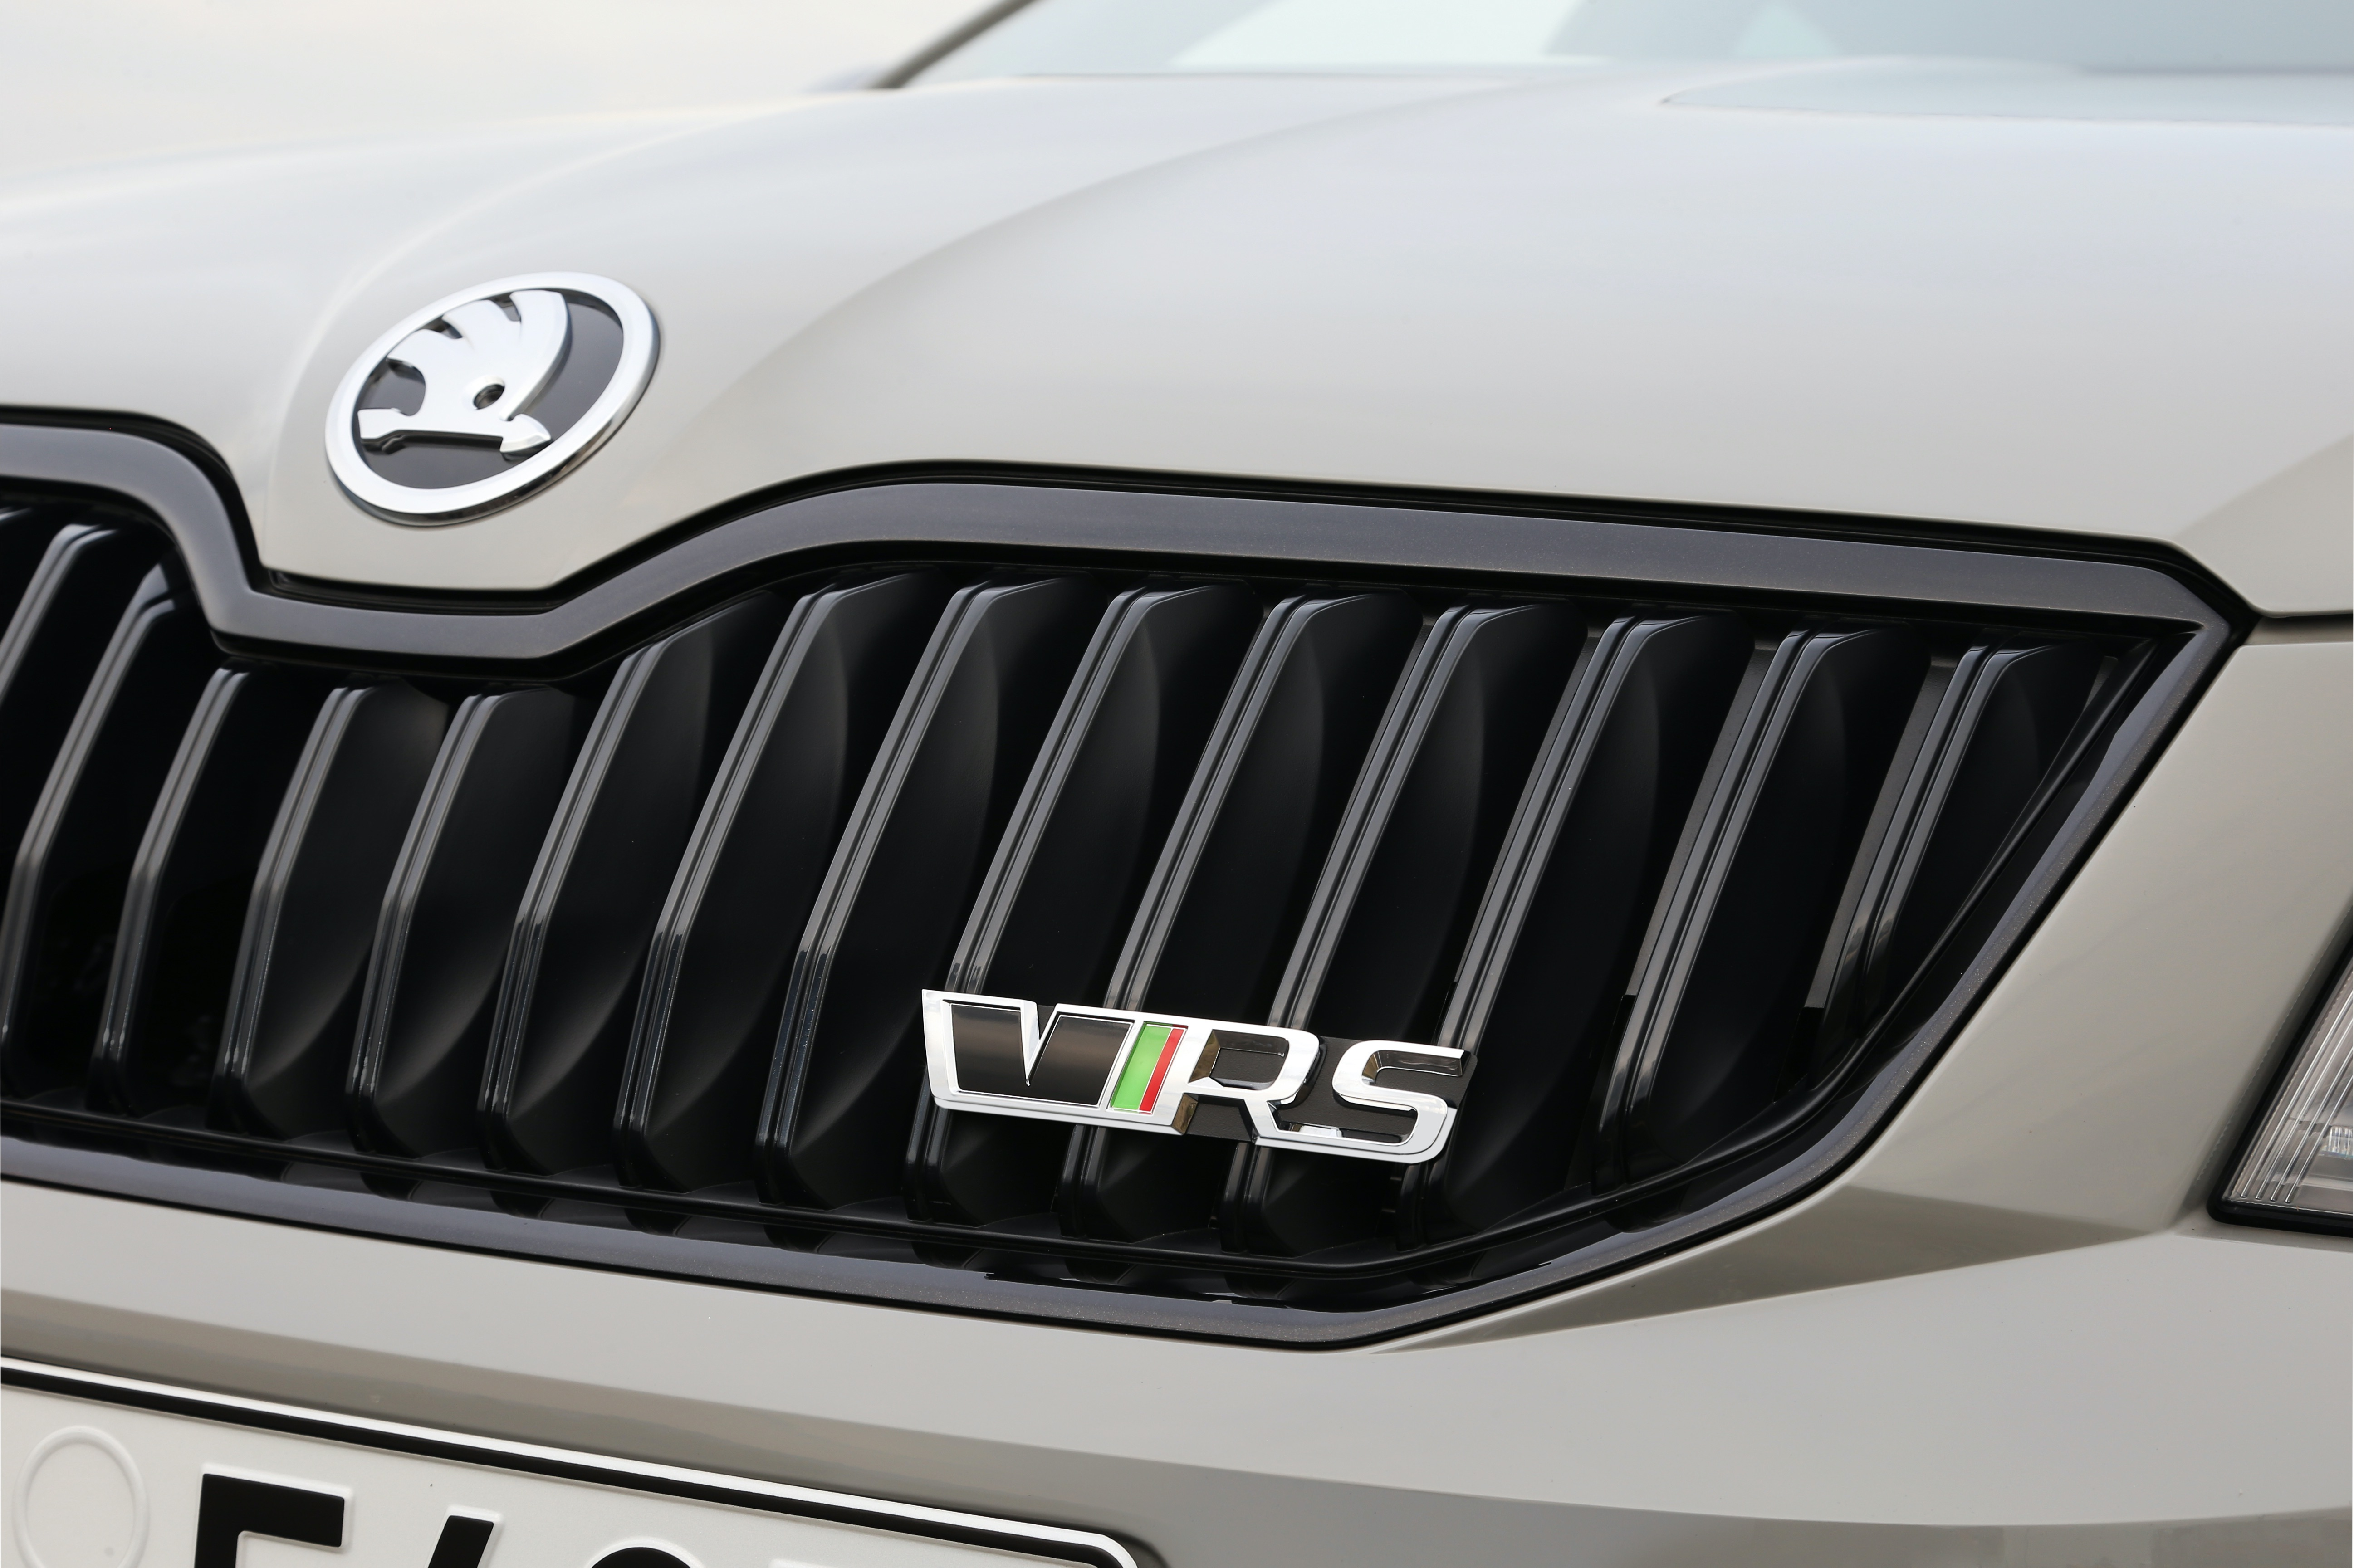 The new VRS is here!